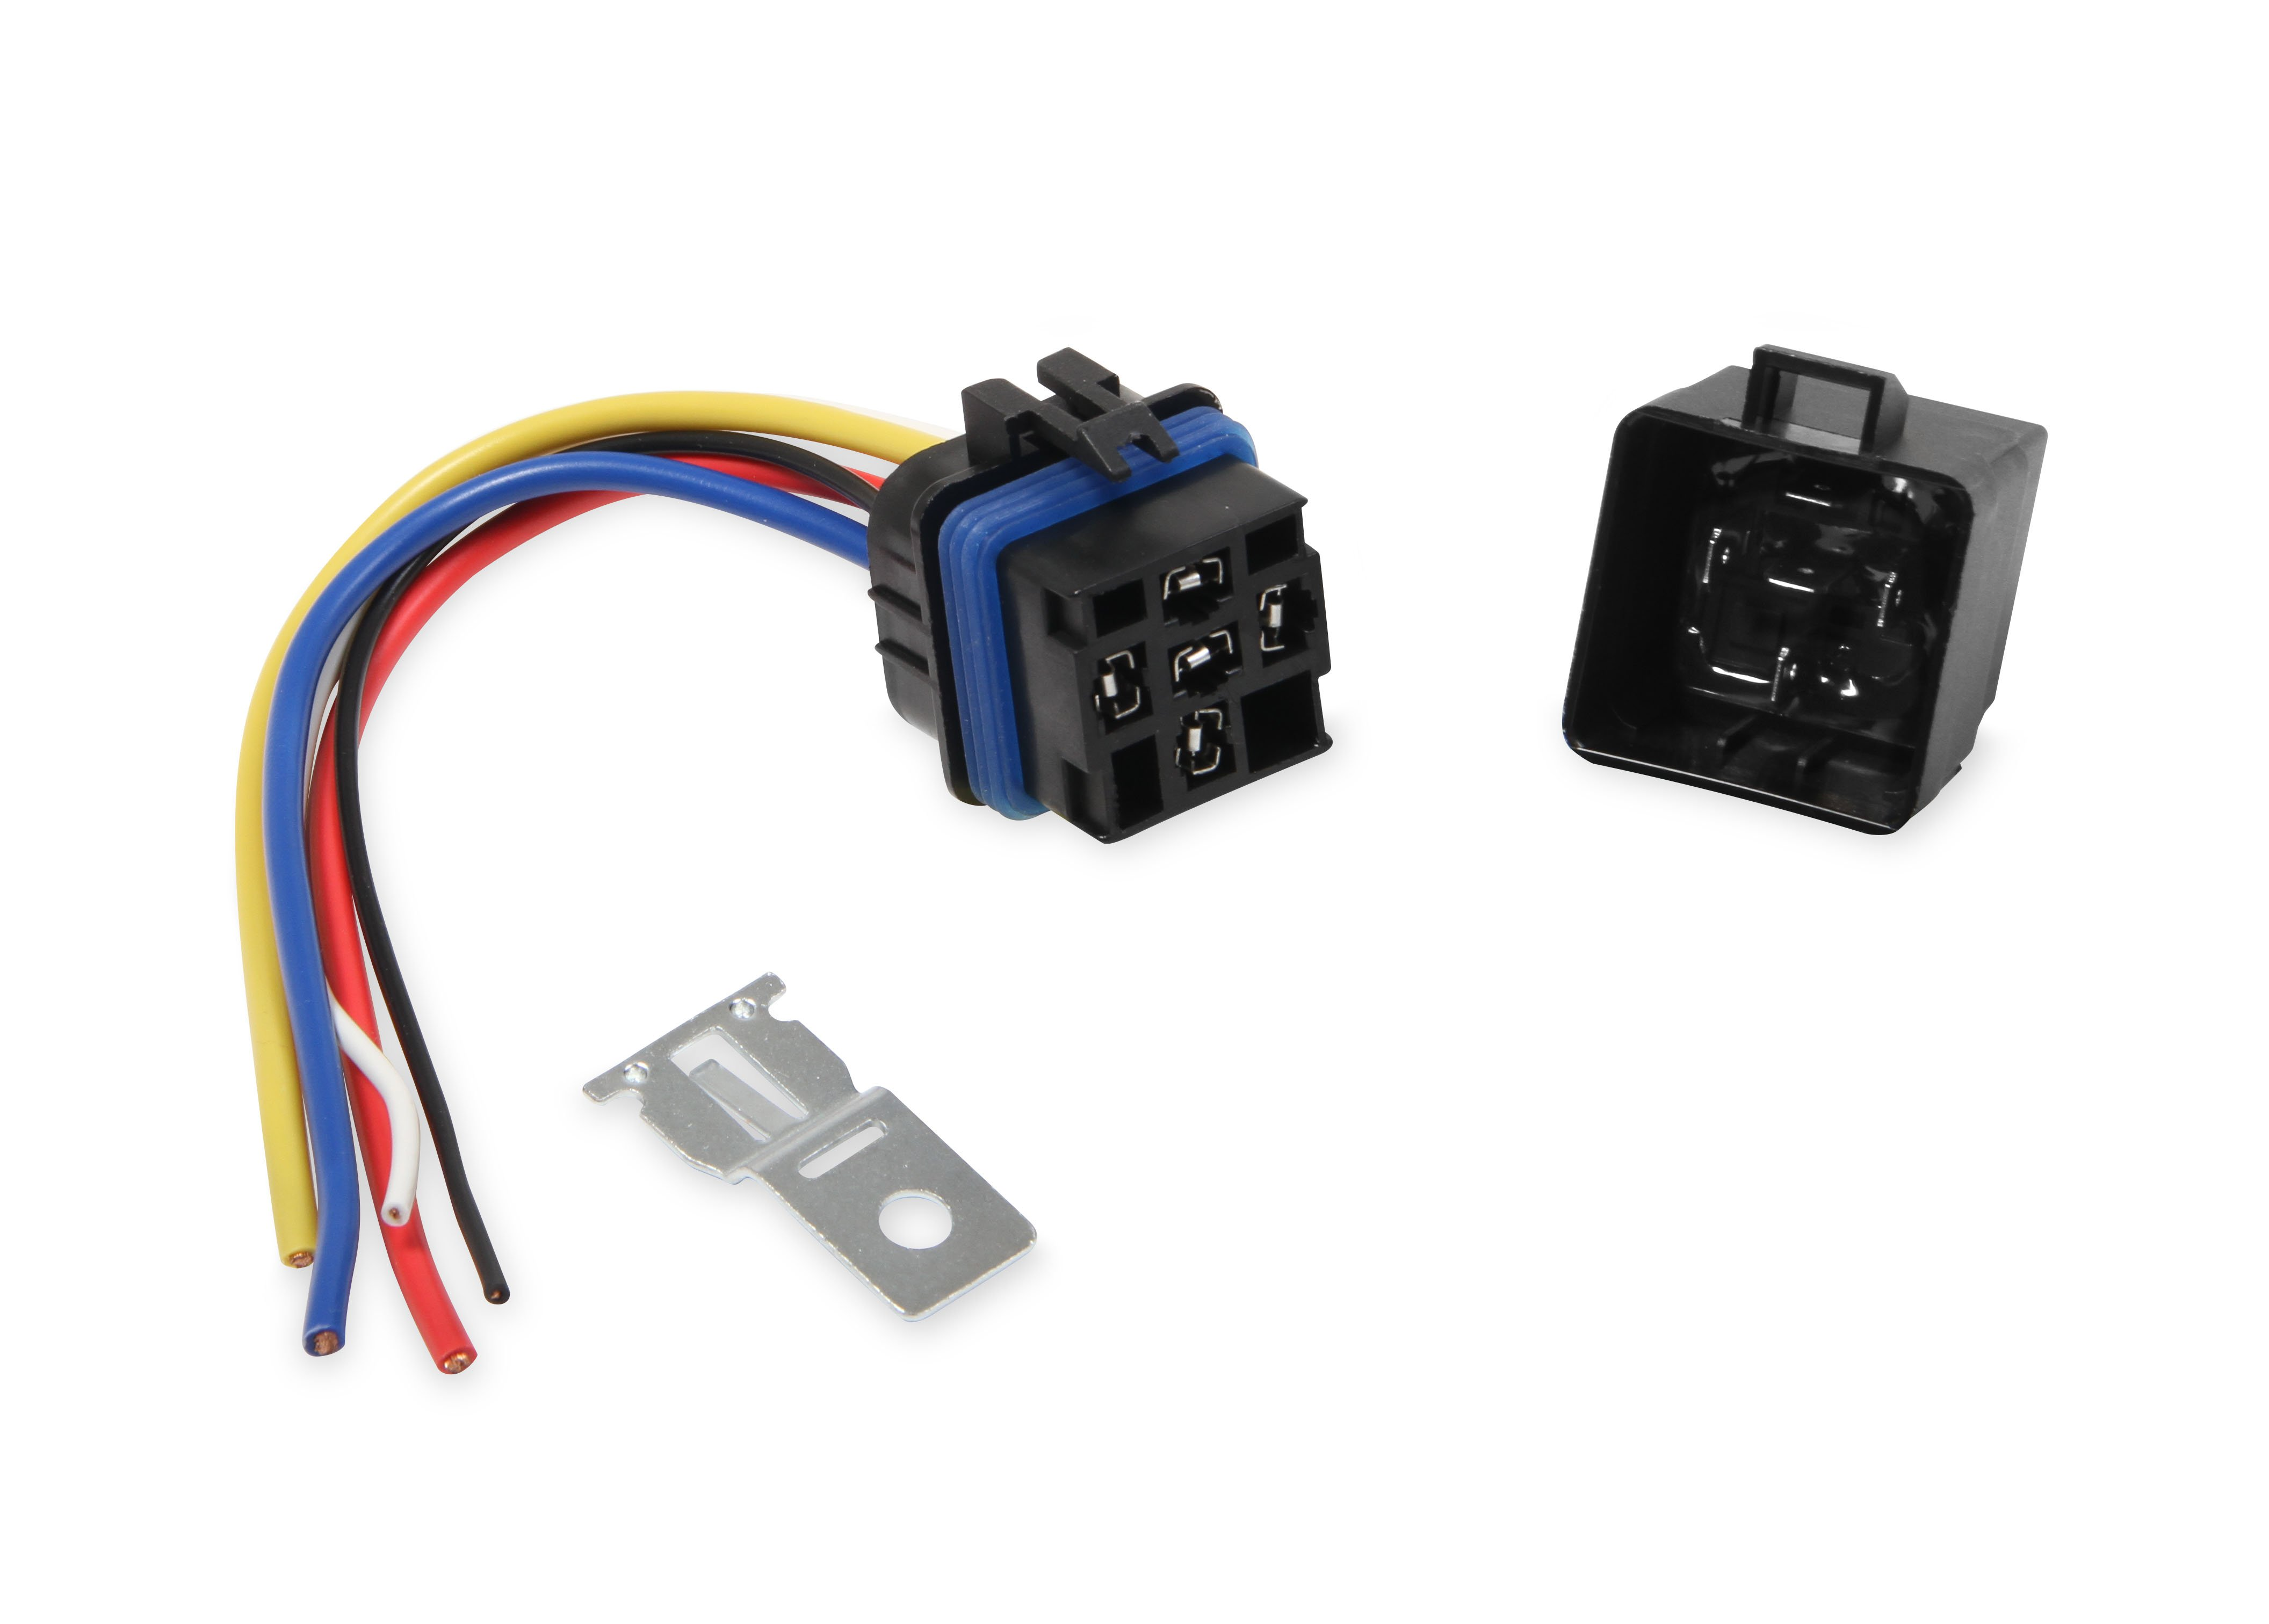 Cool Msd 89611 Msd Spst Relay W Socket Harness Wiring Digital Resources Lavecompassionincorg